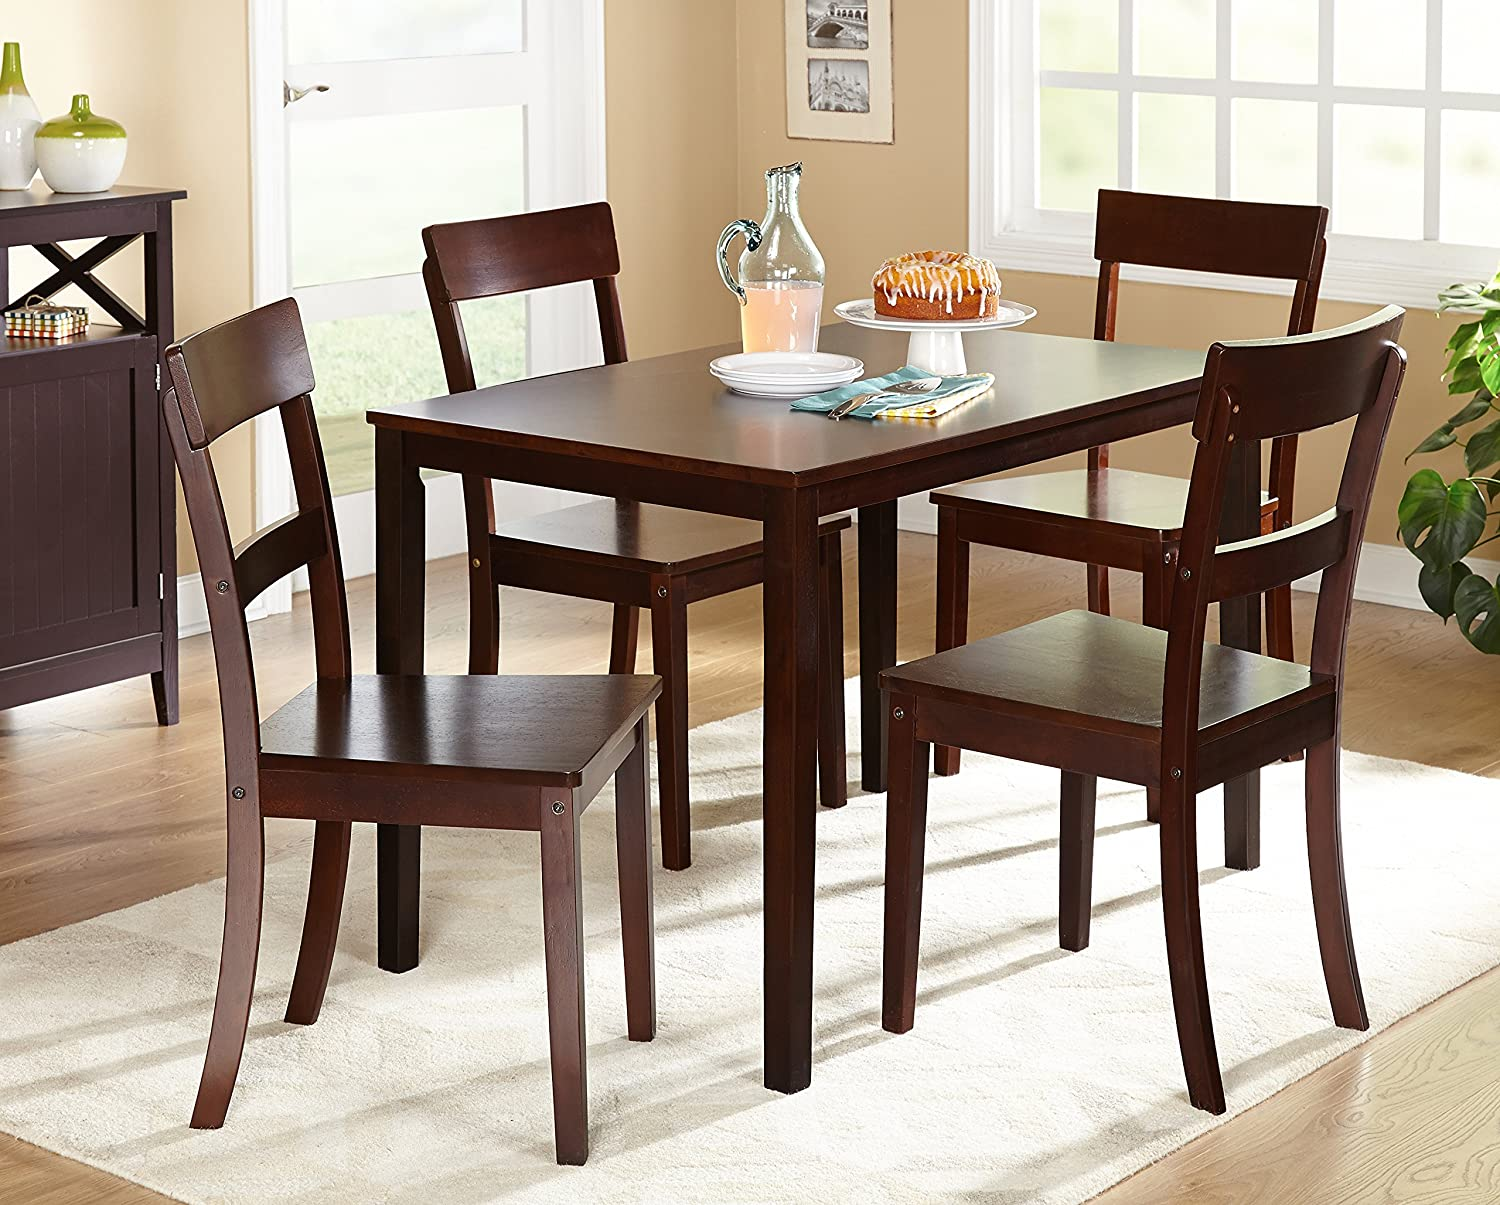 Amazon com target marketing systems ian collection 5 piece indoor kitchen dining set with 1 dining table 4 chairs espresso kitchen dining